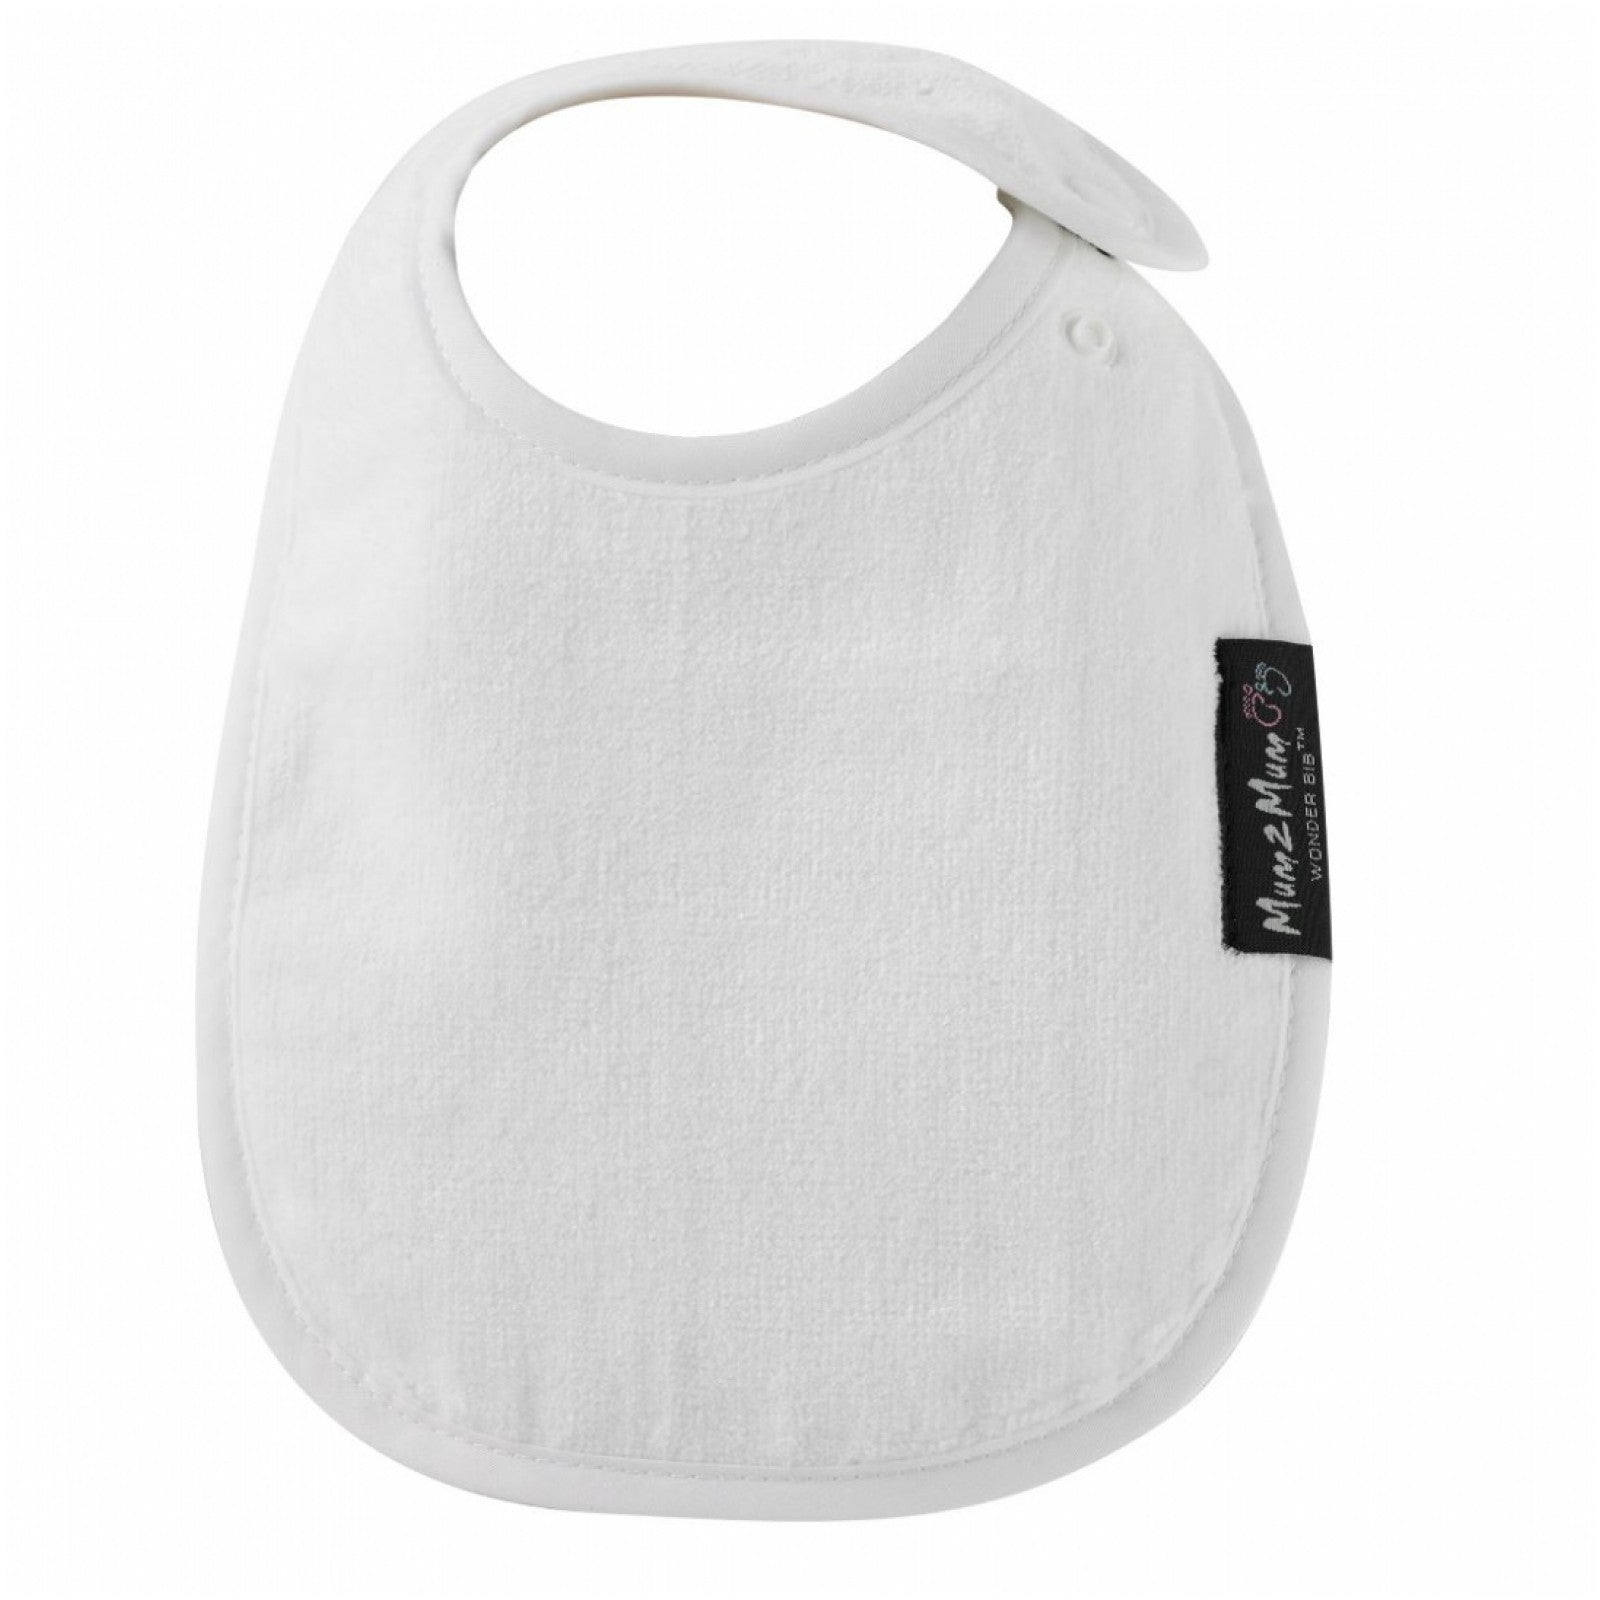 Infant Bib White Worn